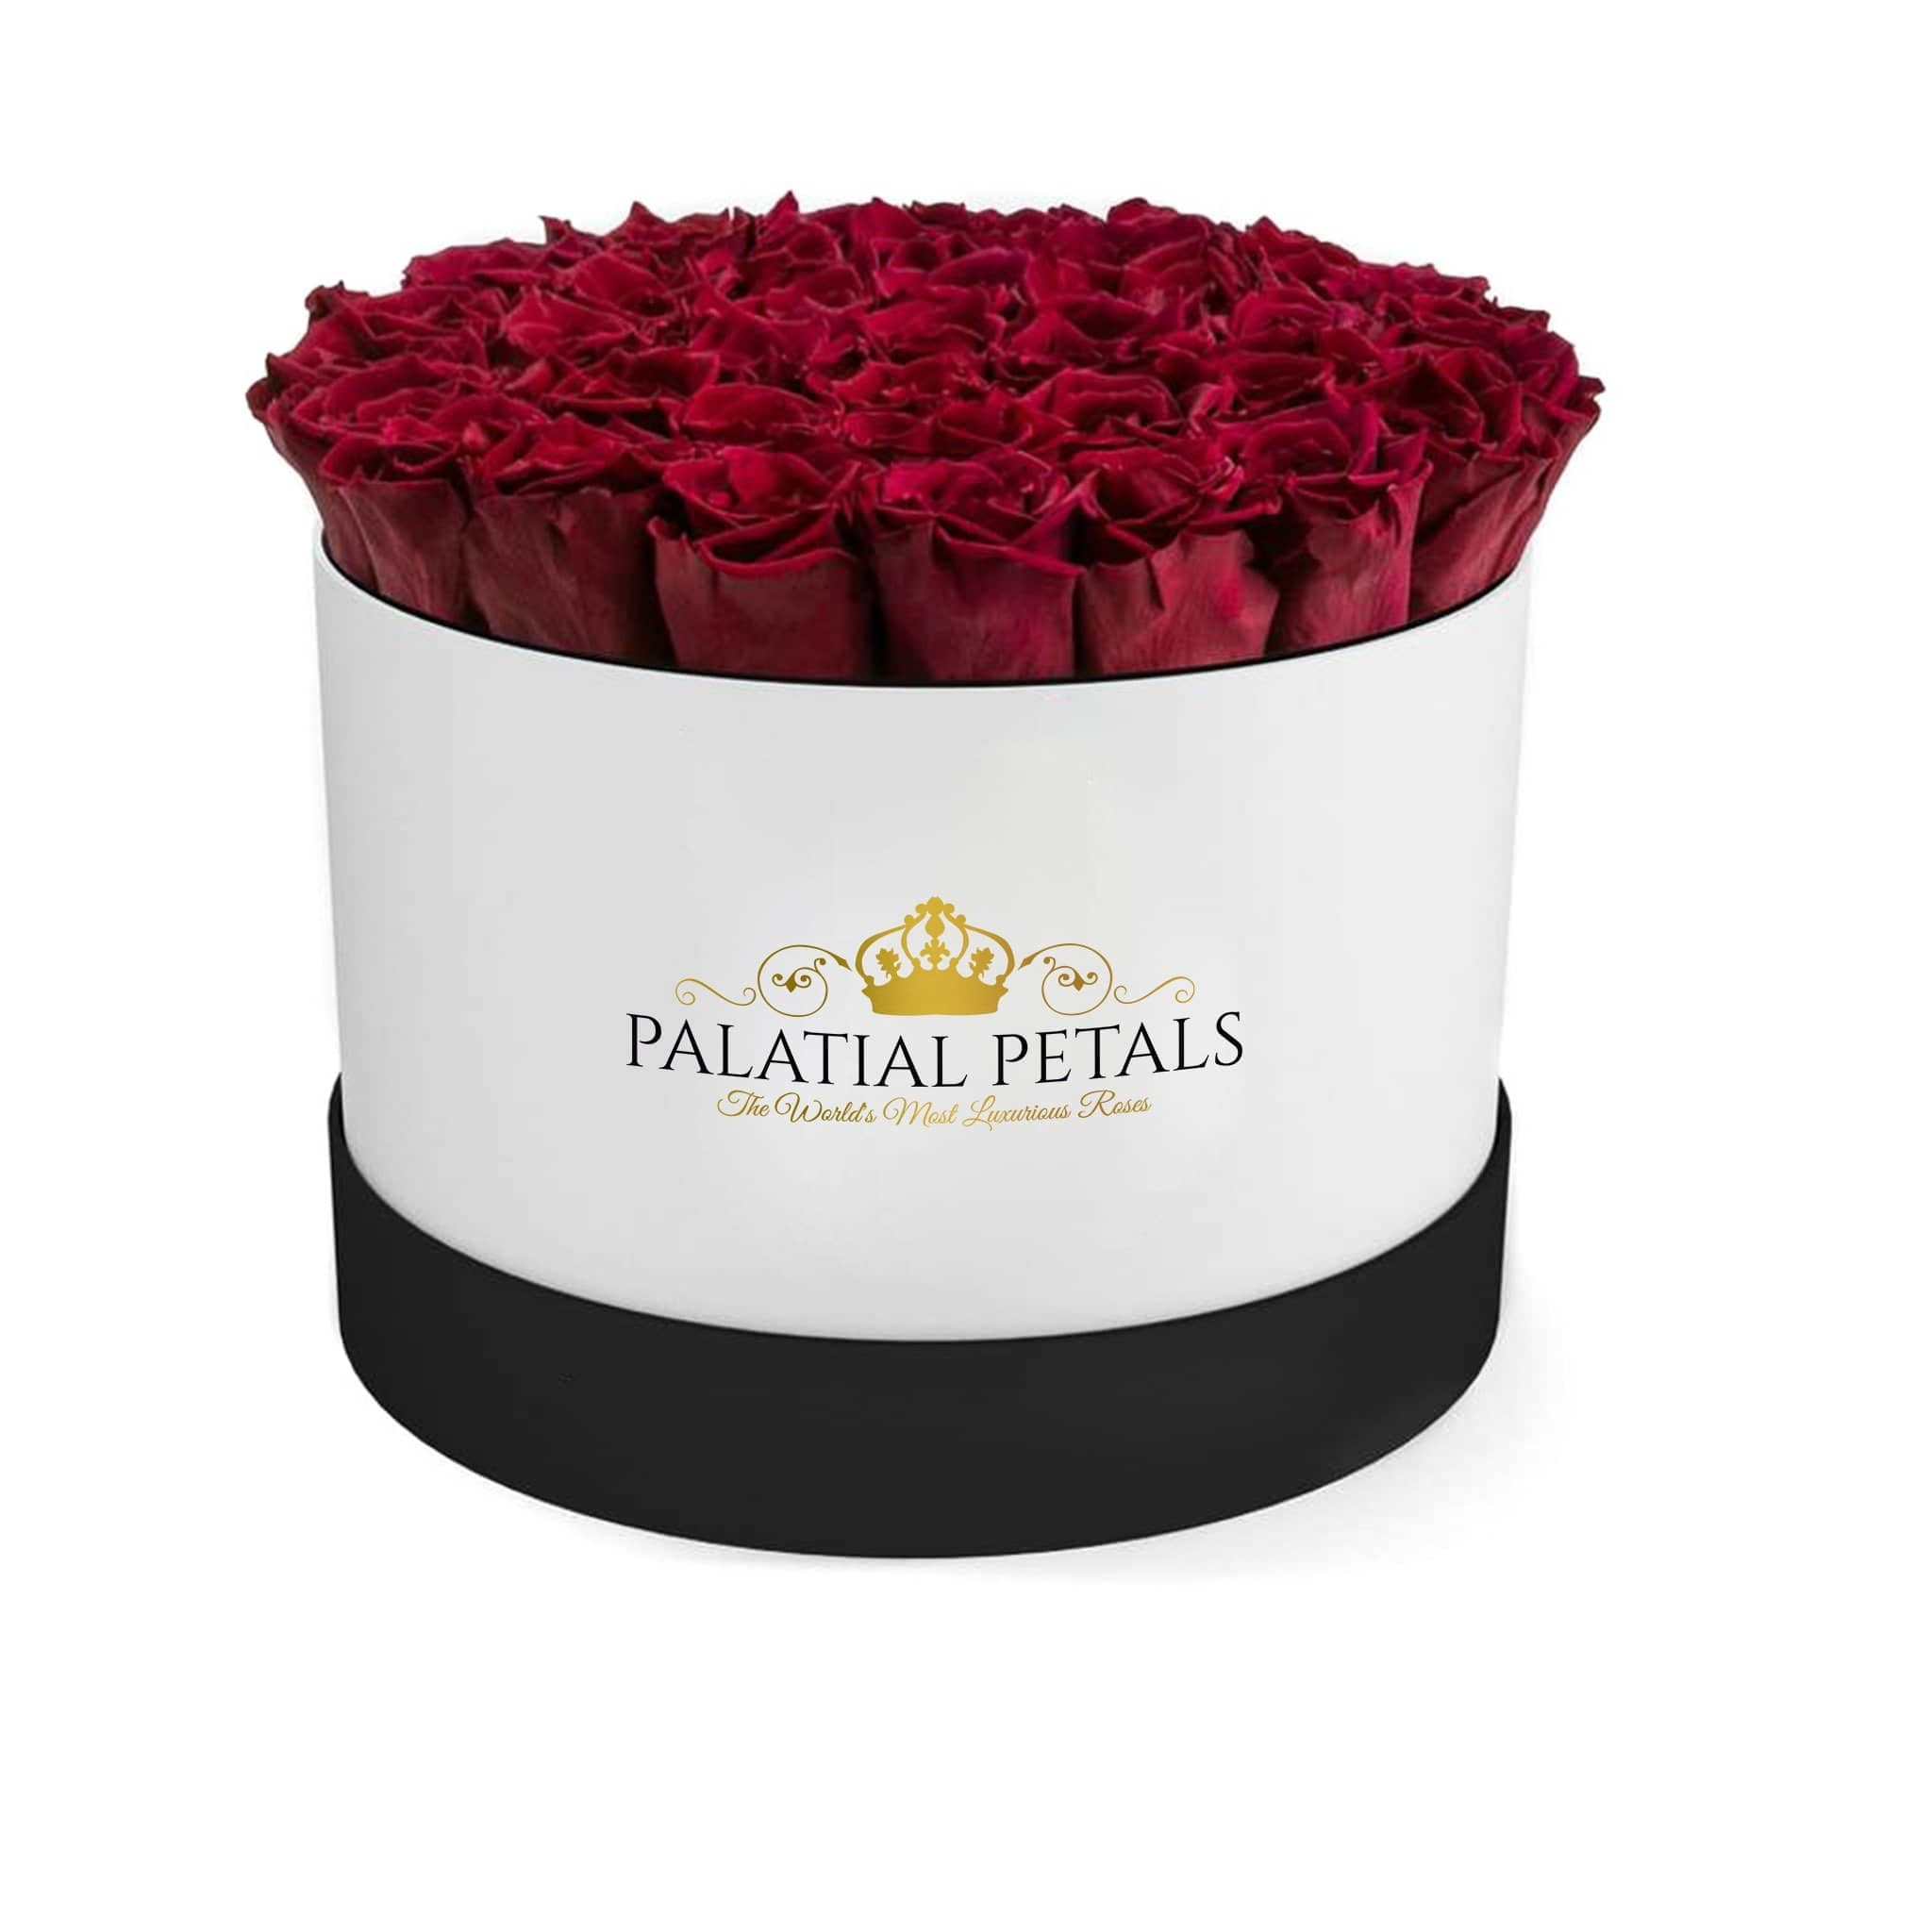 Burgundy Preserved Roses That Last A Year - Grande Rose Box - Palatial Petals